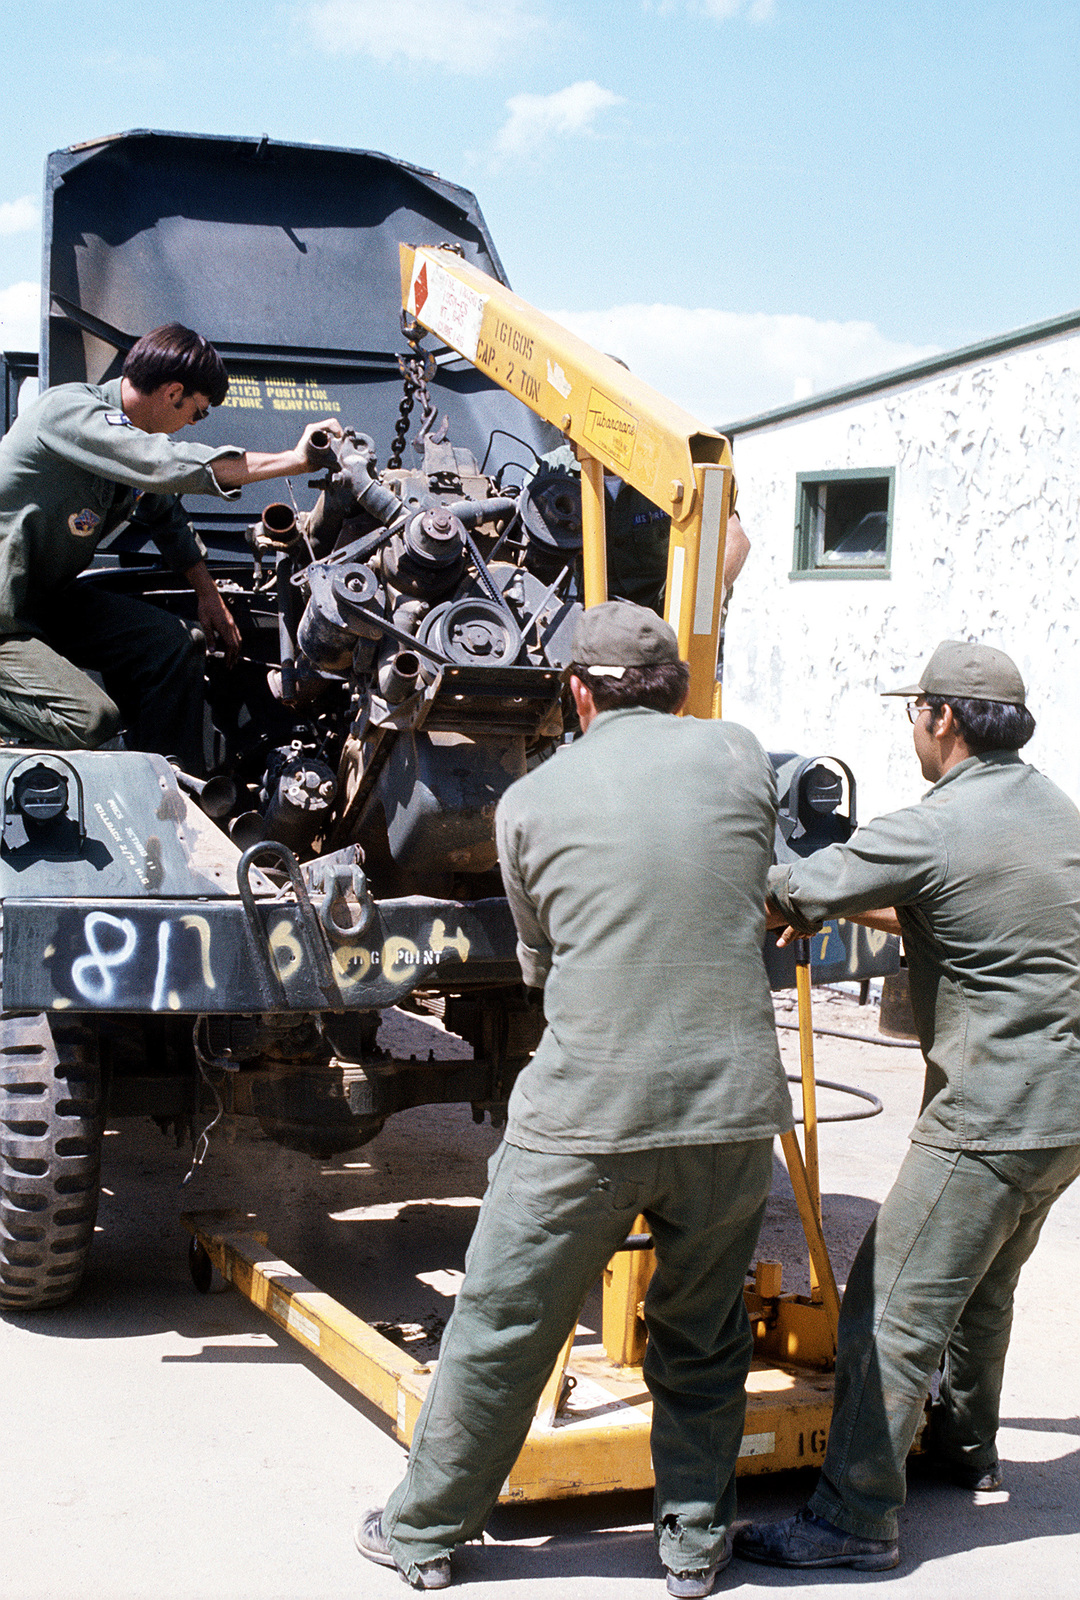 Three Air National Guardsmen remove the engine of a vehicle during rehabilitation operations. The vehicle is one of over 600 acquired from the Marine Corps in an acquisition and rehabilitation project that will save the Air Force about seven million dollars